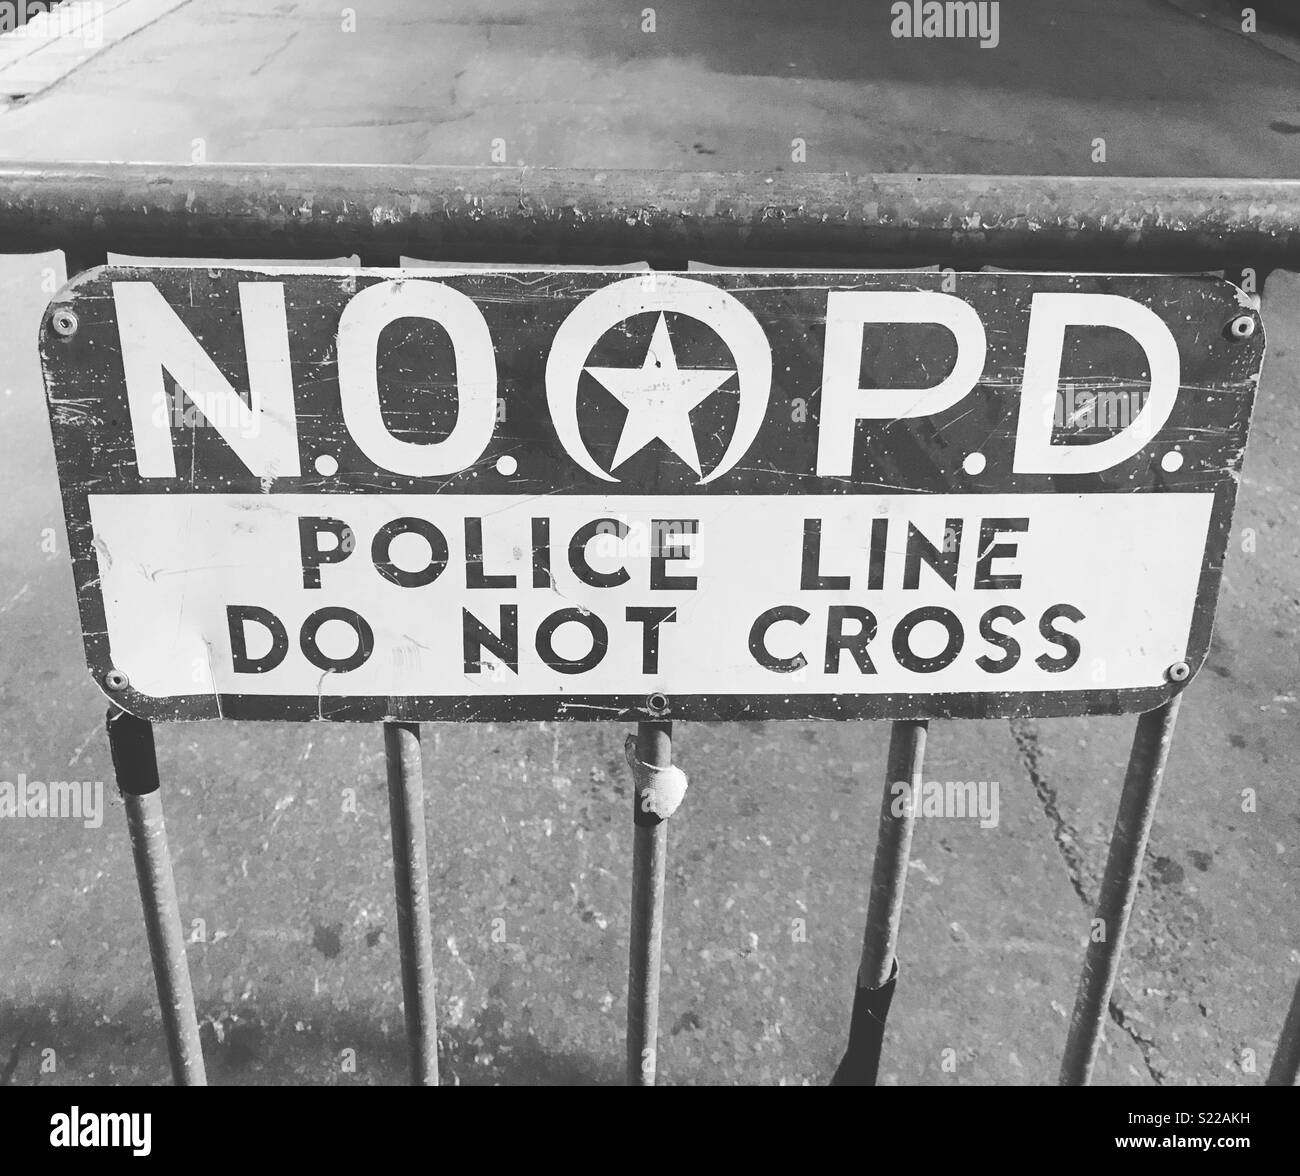 New Orleans Police Department barrier on Bourbon Street, New Orleans. - Stock Image